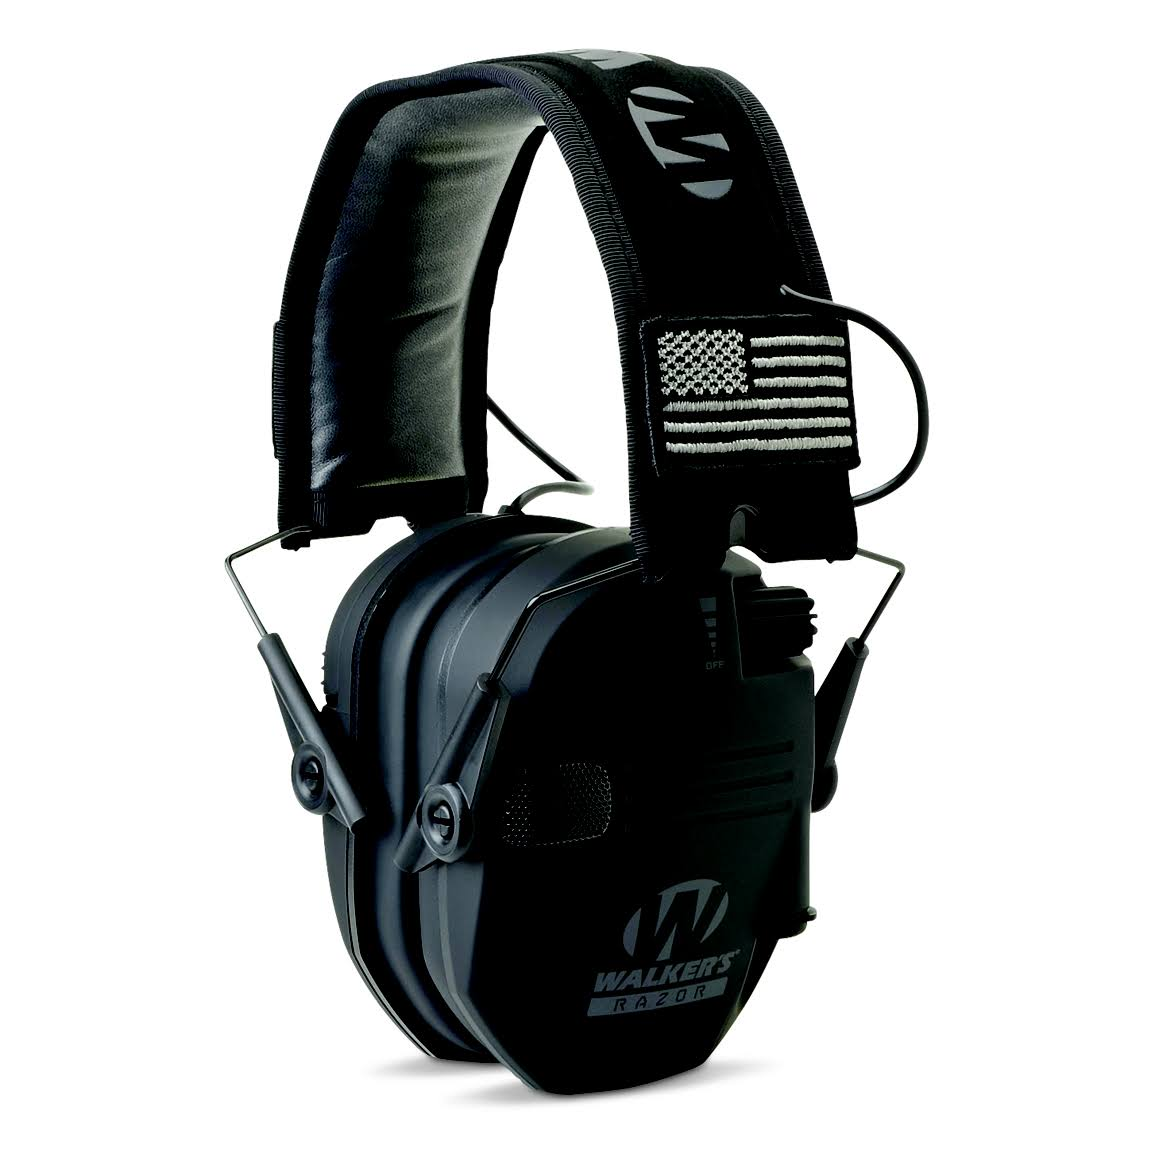 Walker's Game Ear Razor Patriot Series Electronic Adult Folding Earmuffs American Flag Black